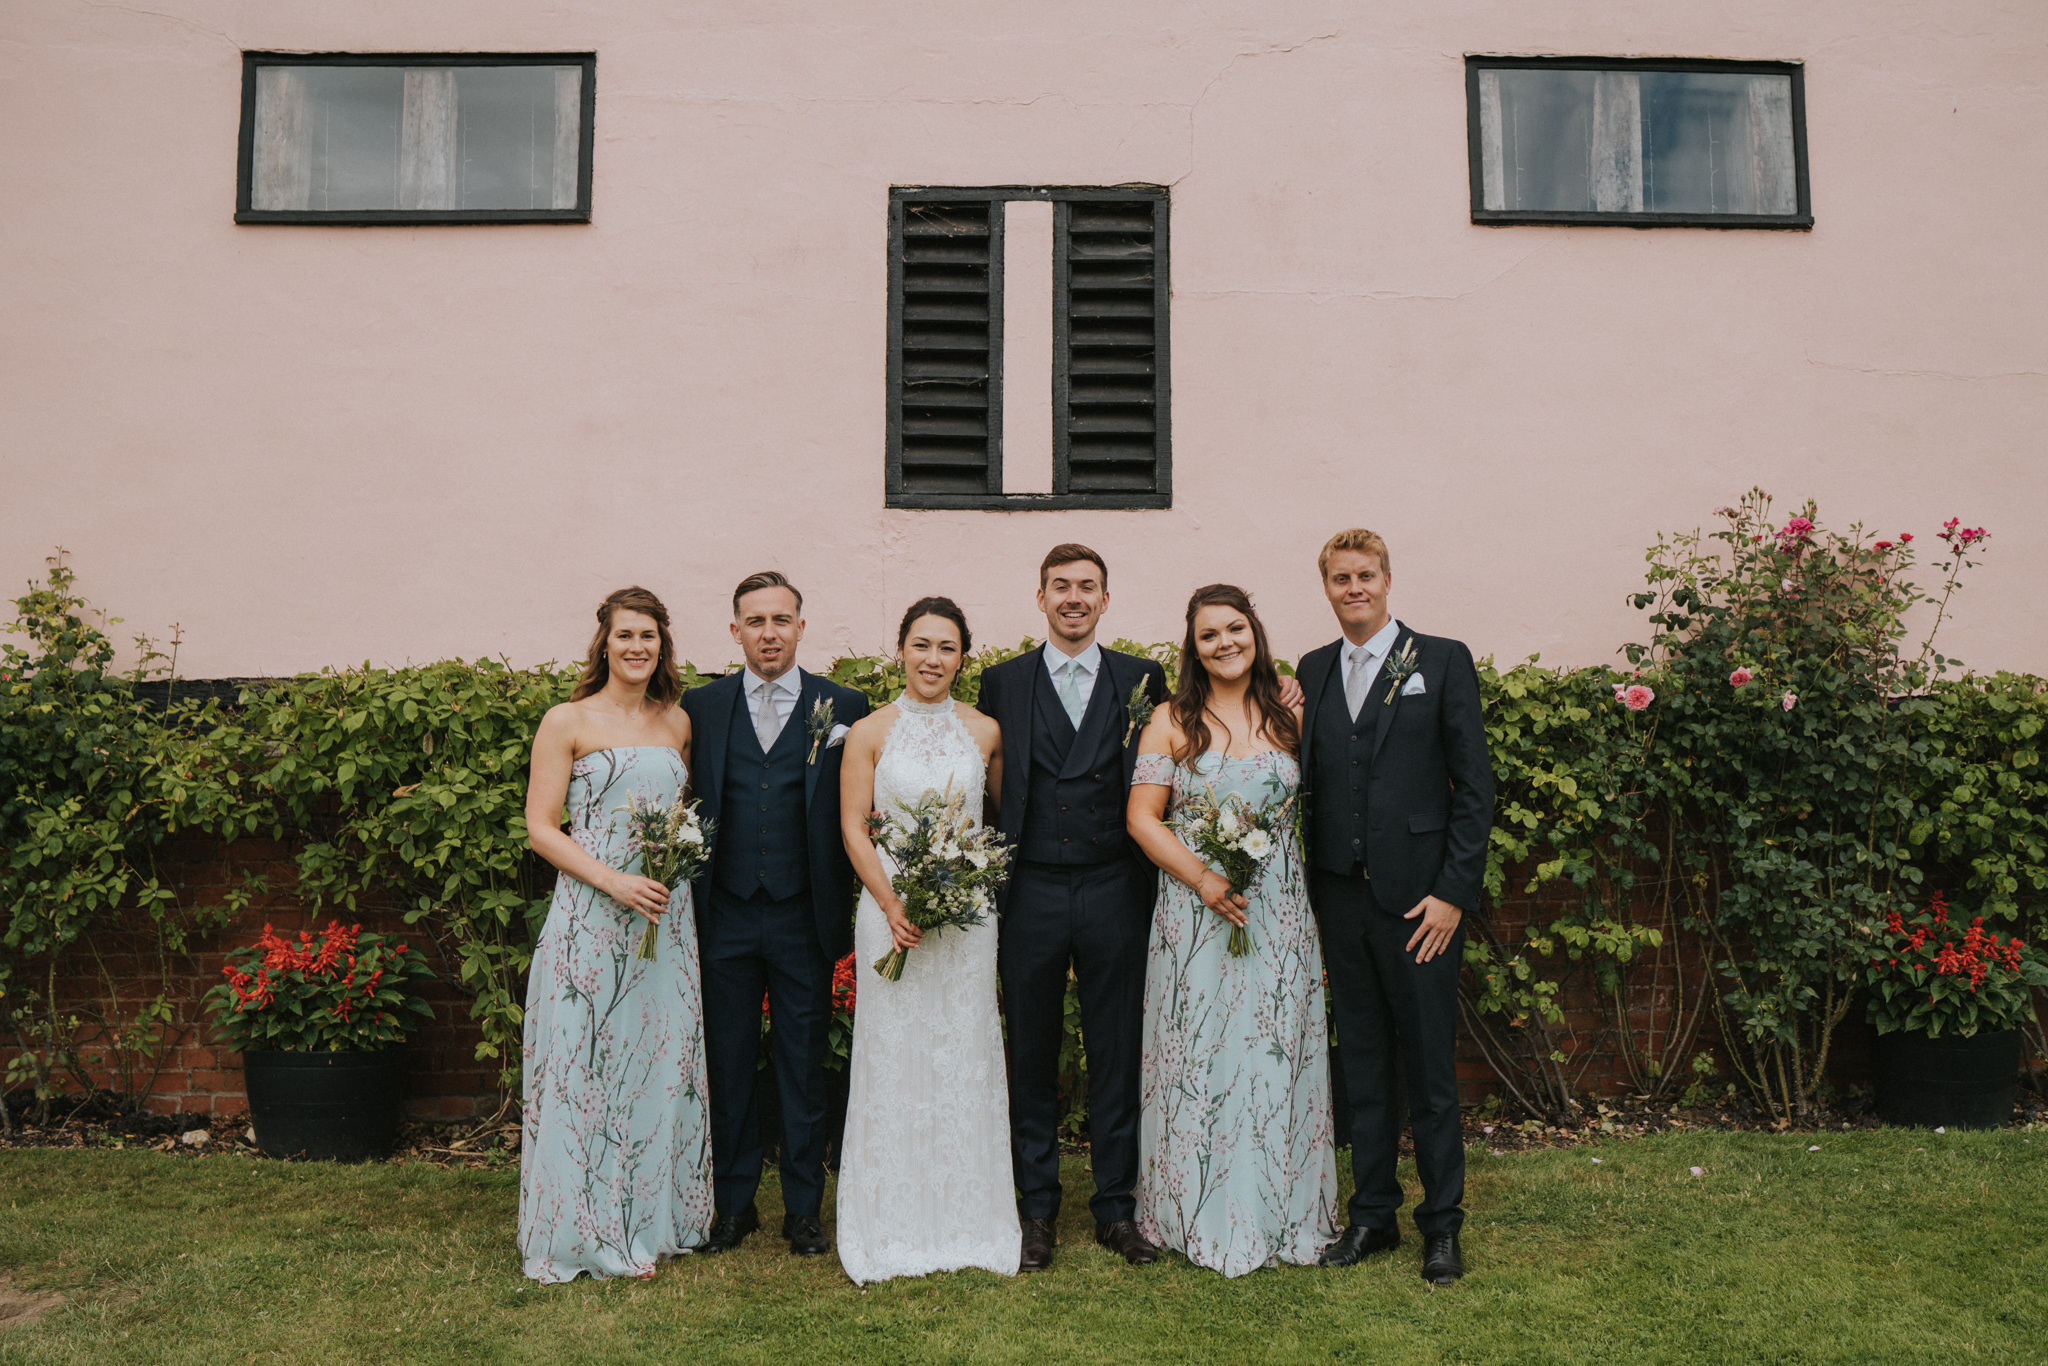 jane-patrick-smeetham-hall-barn-grace-elizabeth-colchester-essex-alternative-wedding-lifestyle-photographer-essex-suffolk-norfolk-devon (34 of 52).jpg